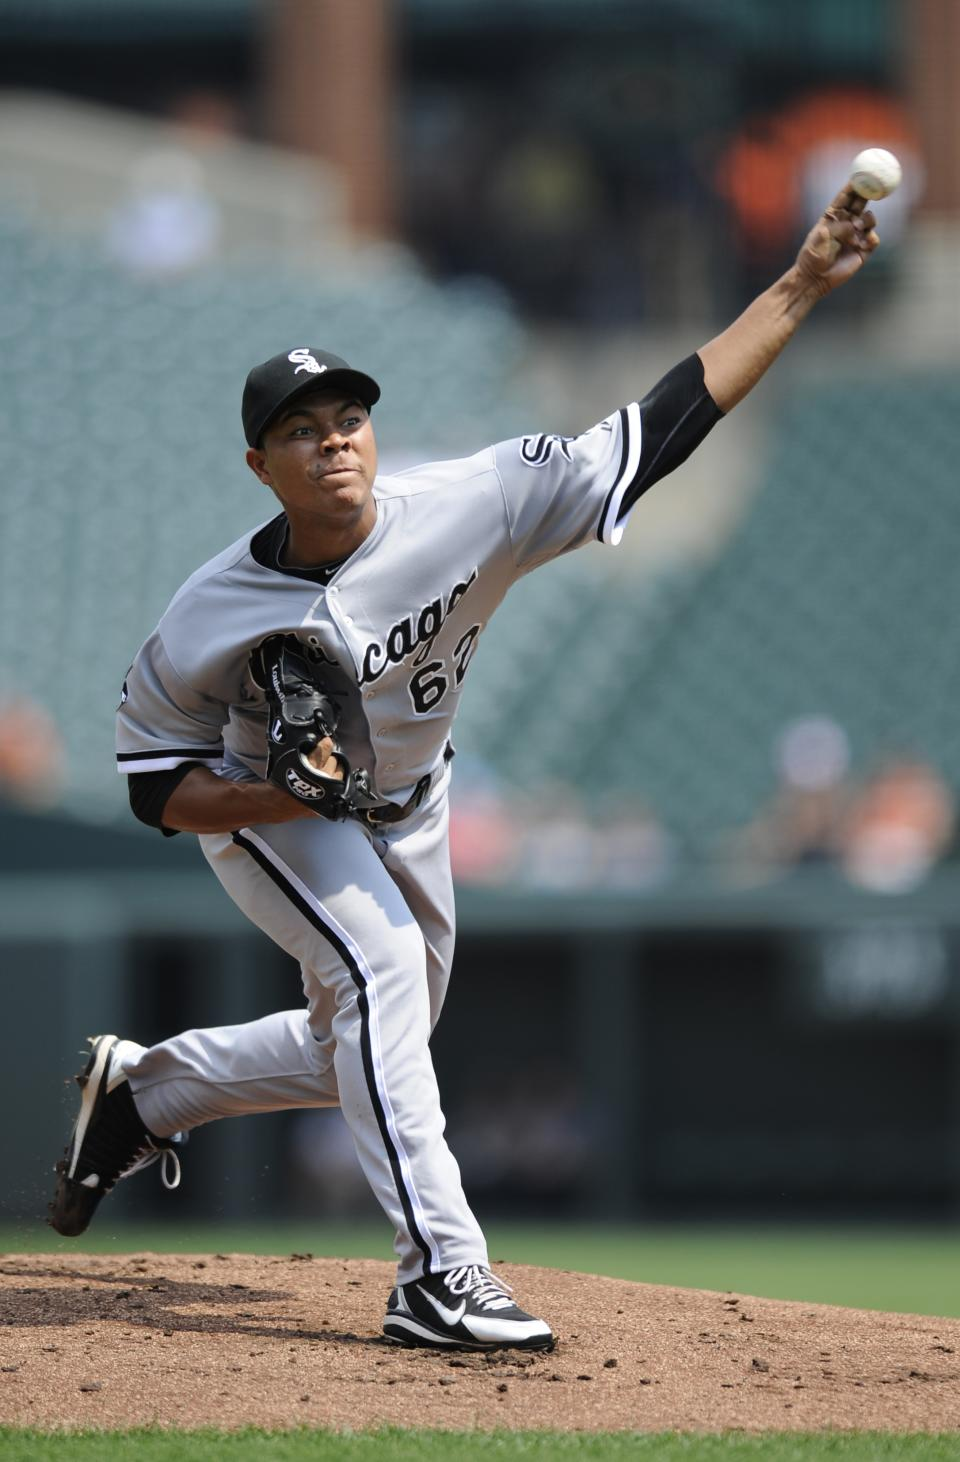 Chicago White Sox starting pitcher Jose Quintana delivers a pitch against the Baltimore Orioles during the first inning of a baseball game, Thursday, Aug. 30, 2012, in Baltimore. (AP Photo/Nick Wass)